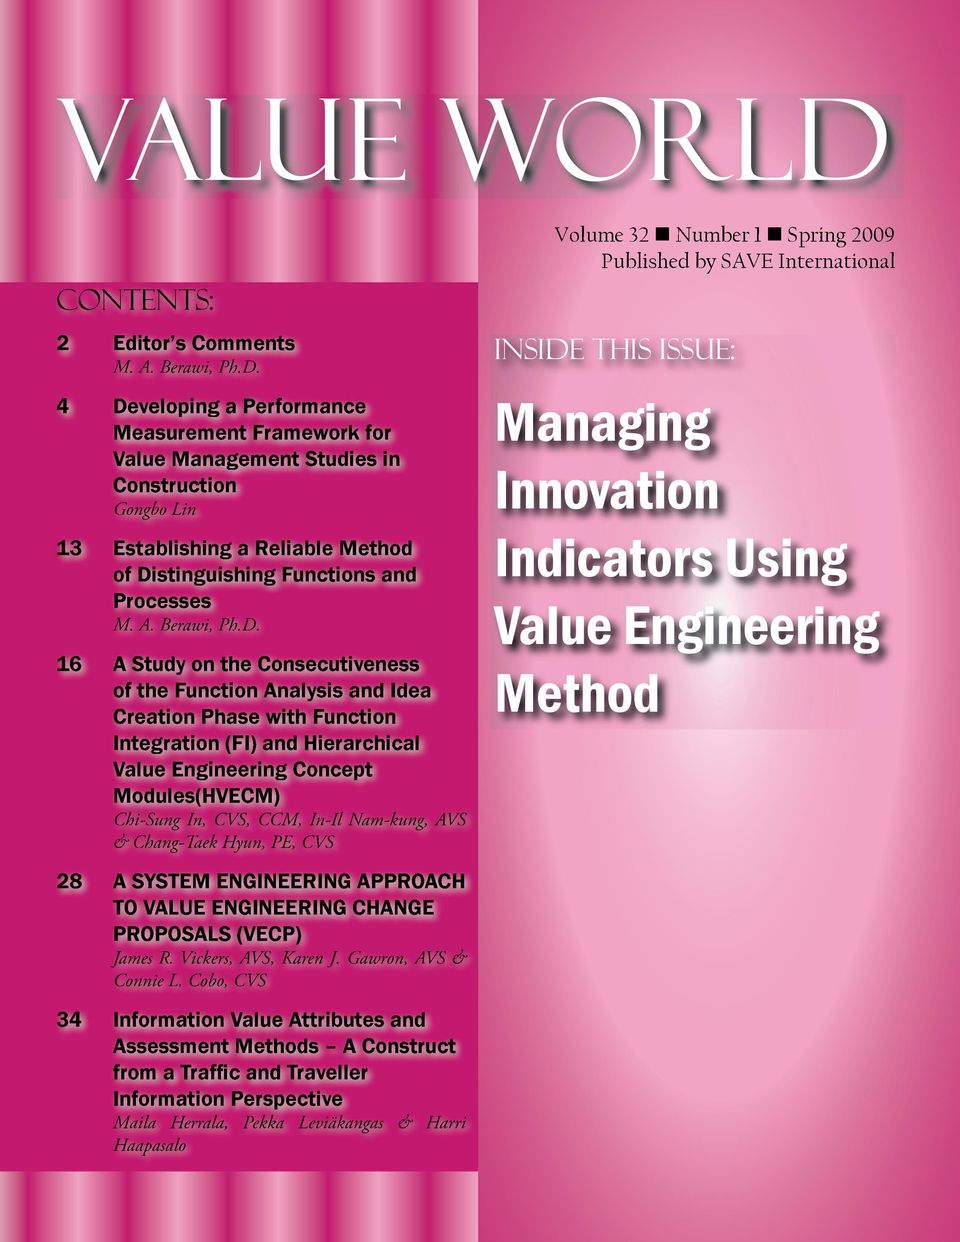 Ph.D. 16 A Study on the Consecutiveness of the Function Analysis and Idea Creation Phase with Function Integration (FI) and Hierarchical Value Engineering Concept Modules(HVECM) Chi-Sung In, CVS,